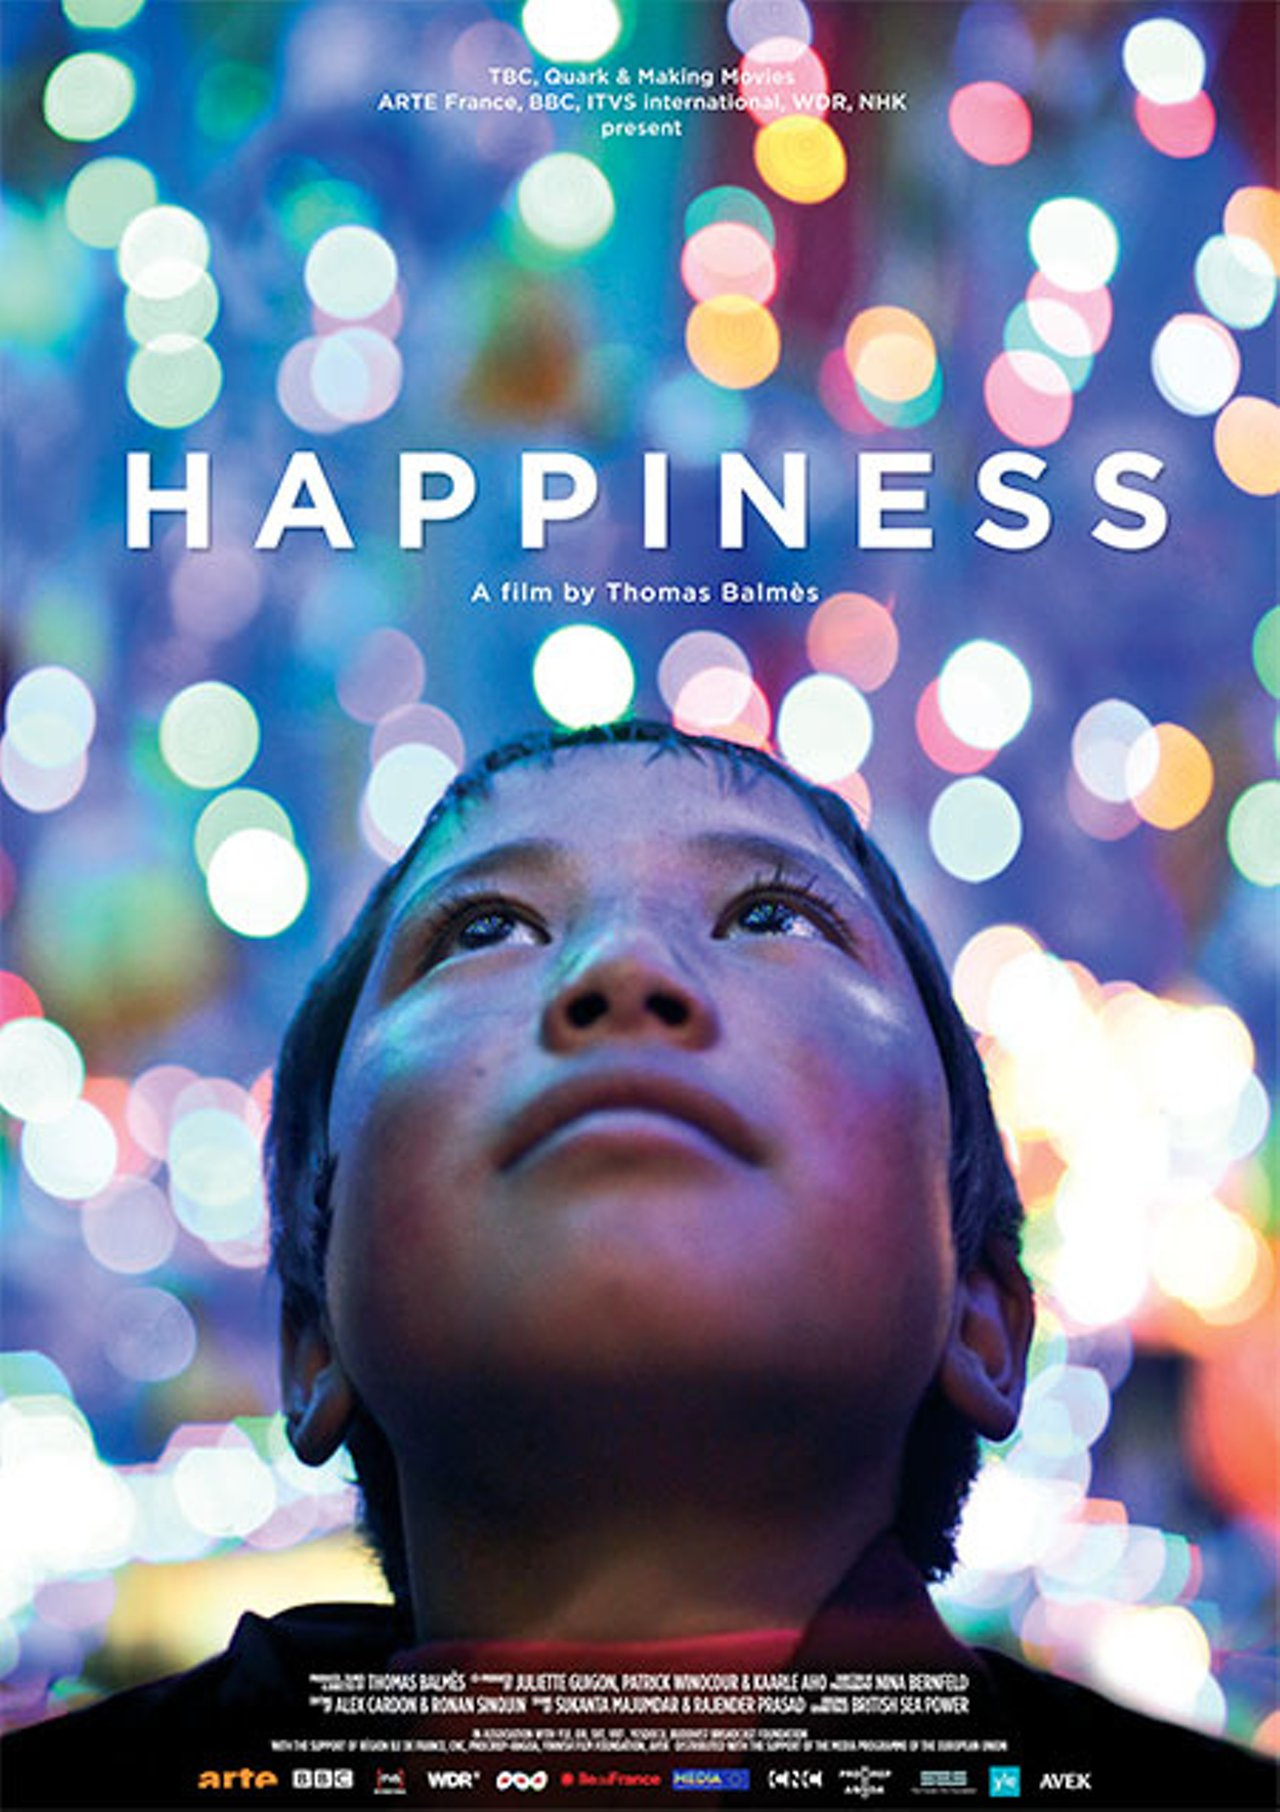 Happiness (Thomas Balmès, 2015)